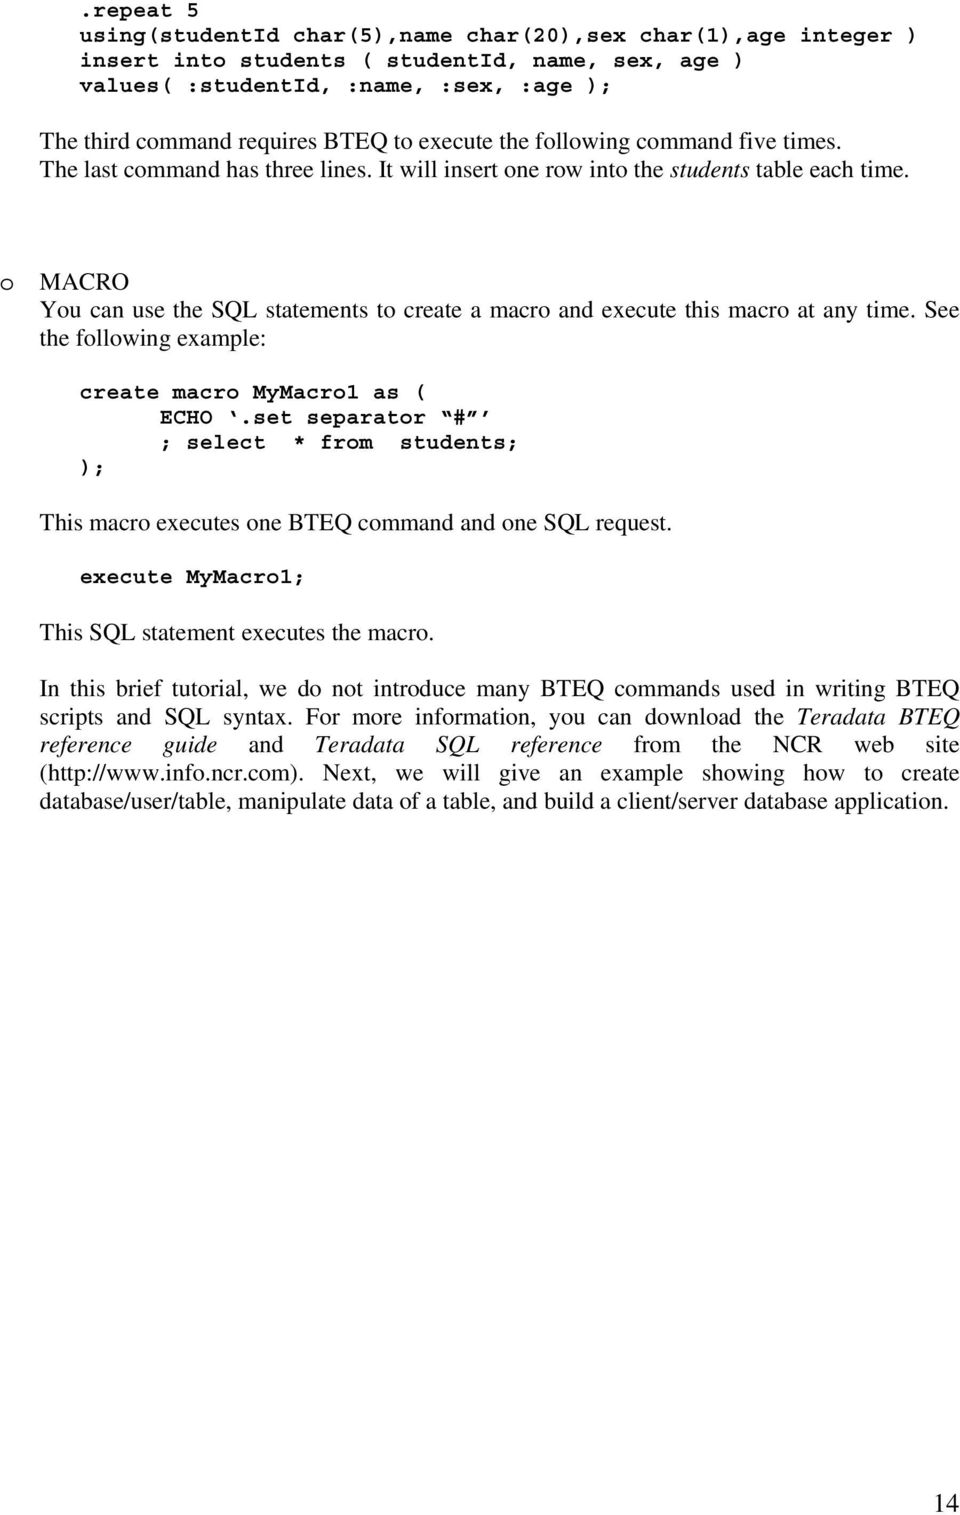 MACRO Yu can use the SQL statements t create a macr and execute this macr at